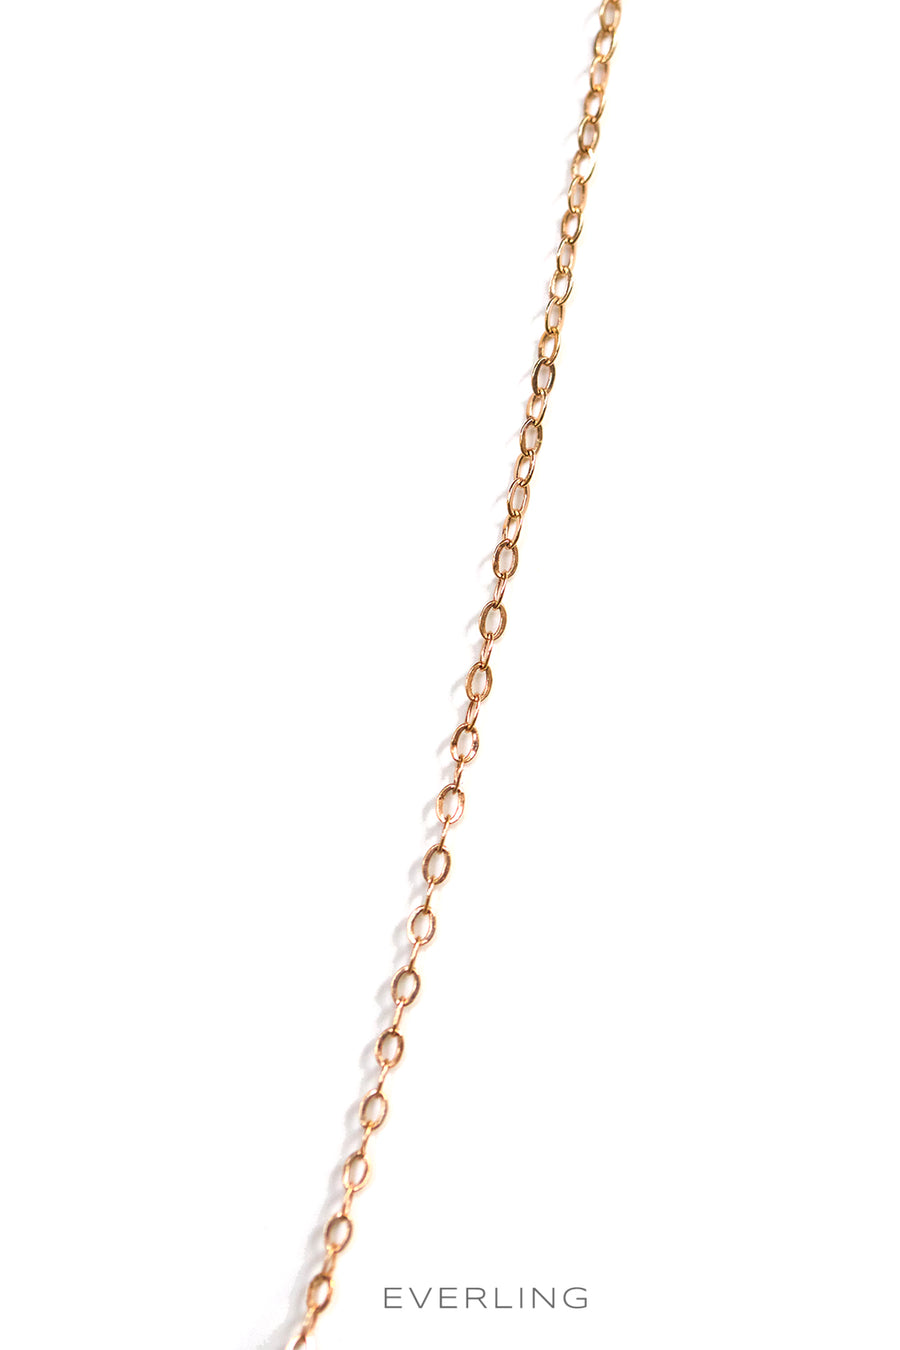 "Detail-14K Rose Gold 36"" Link Chain. #pinkgold #goldchains www.everlingjewelry.com"